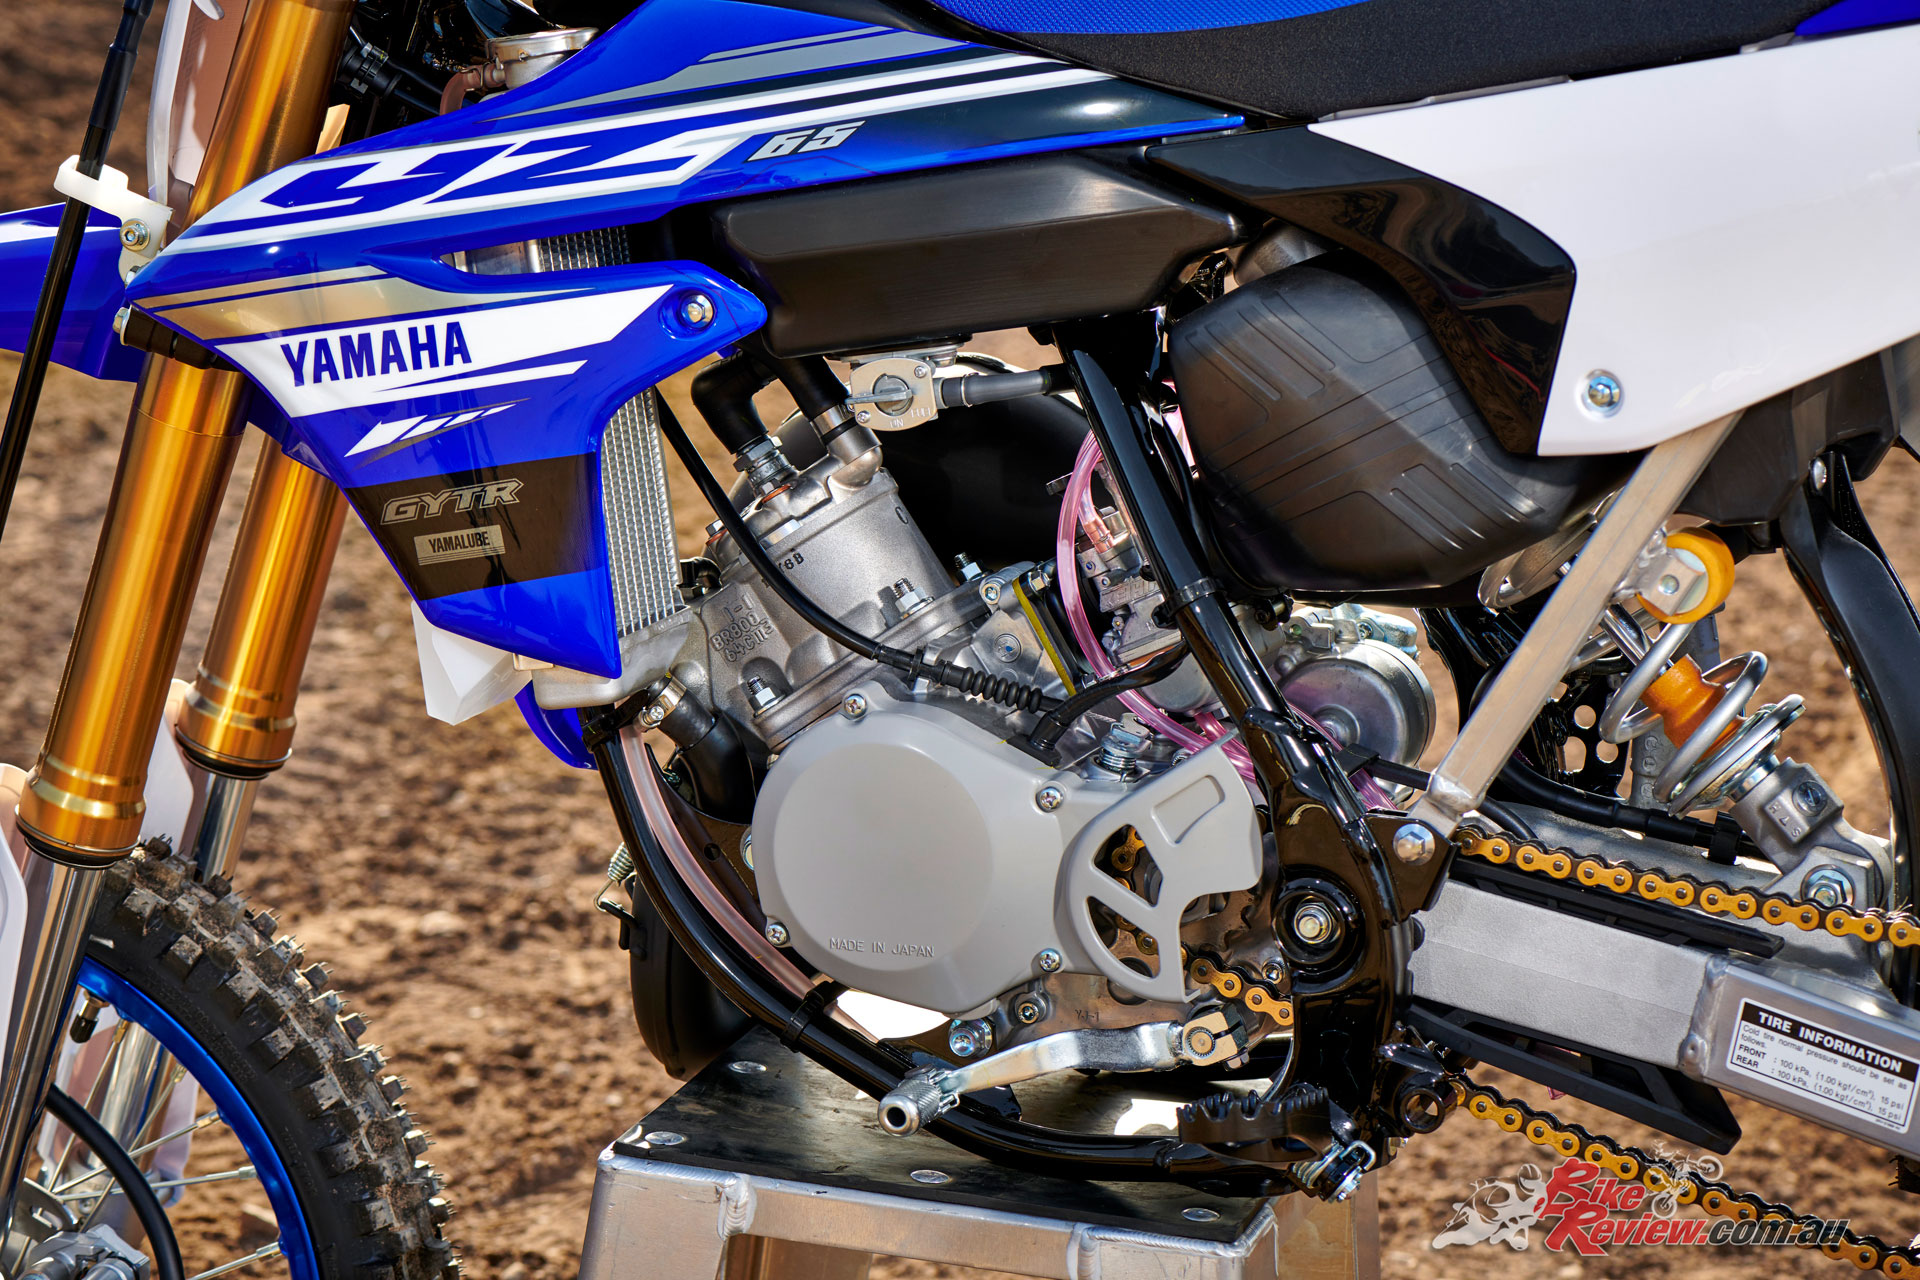 The YZ65's 64.8cc liquid-cooled, two-stroke engine